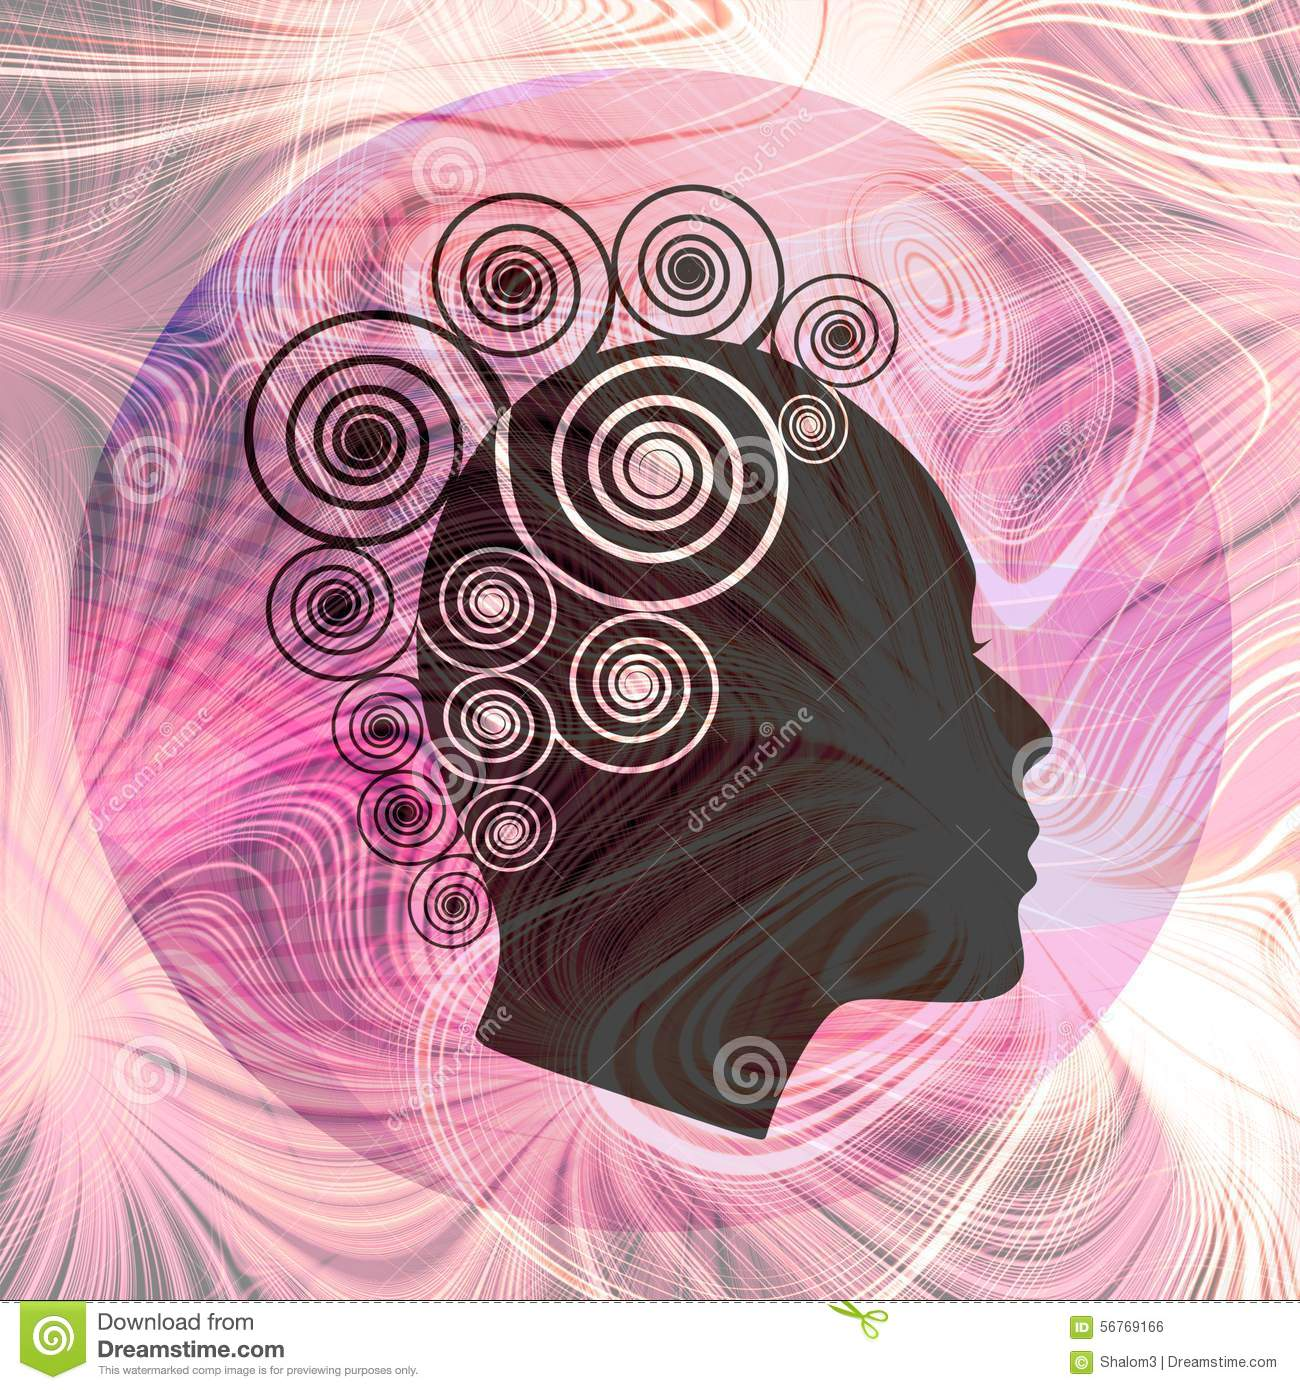 Women profile on pink fractal background beauty fantasy for Abstract salon of the arts